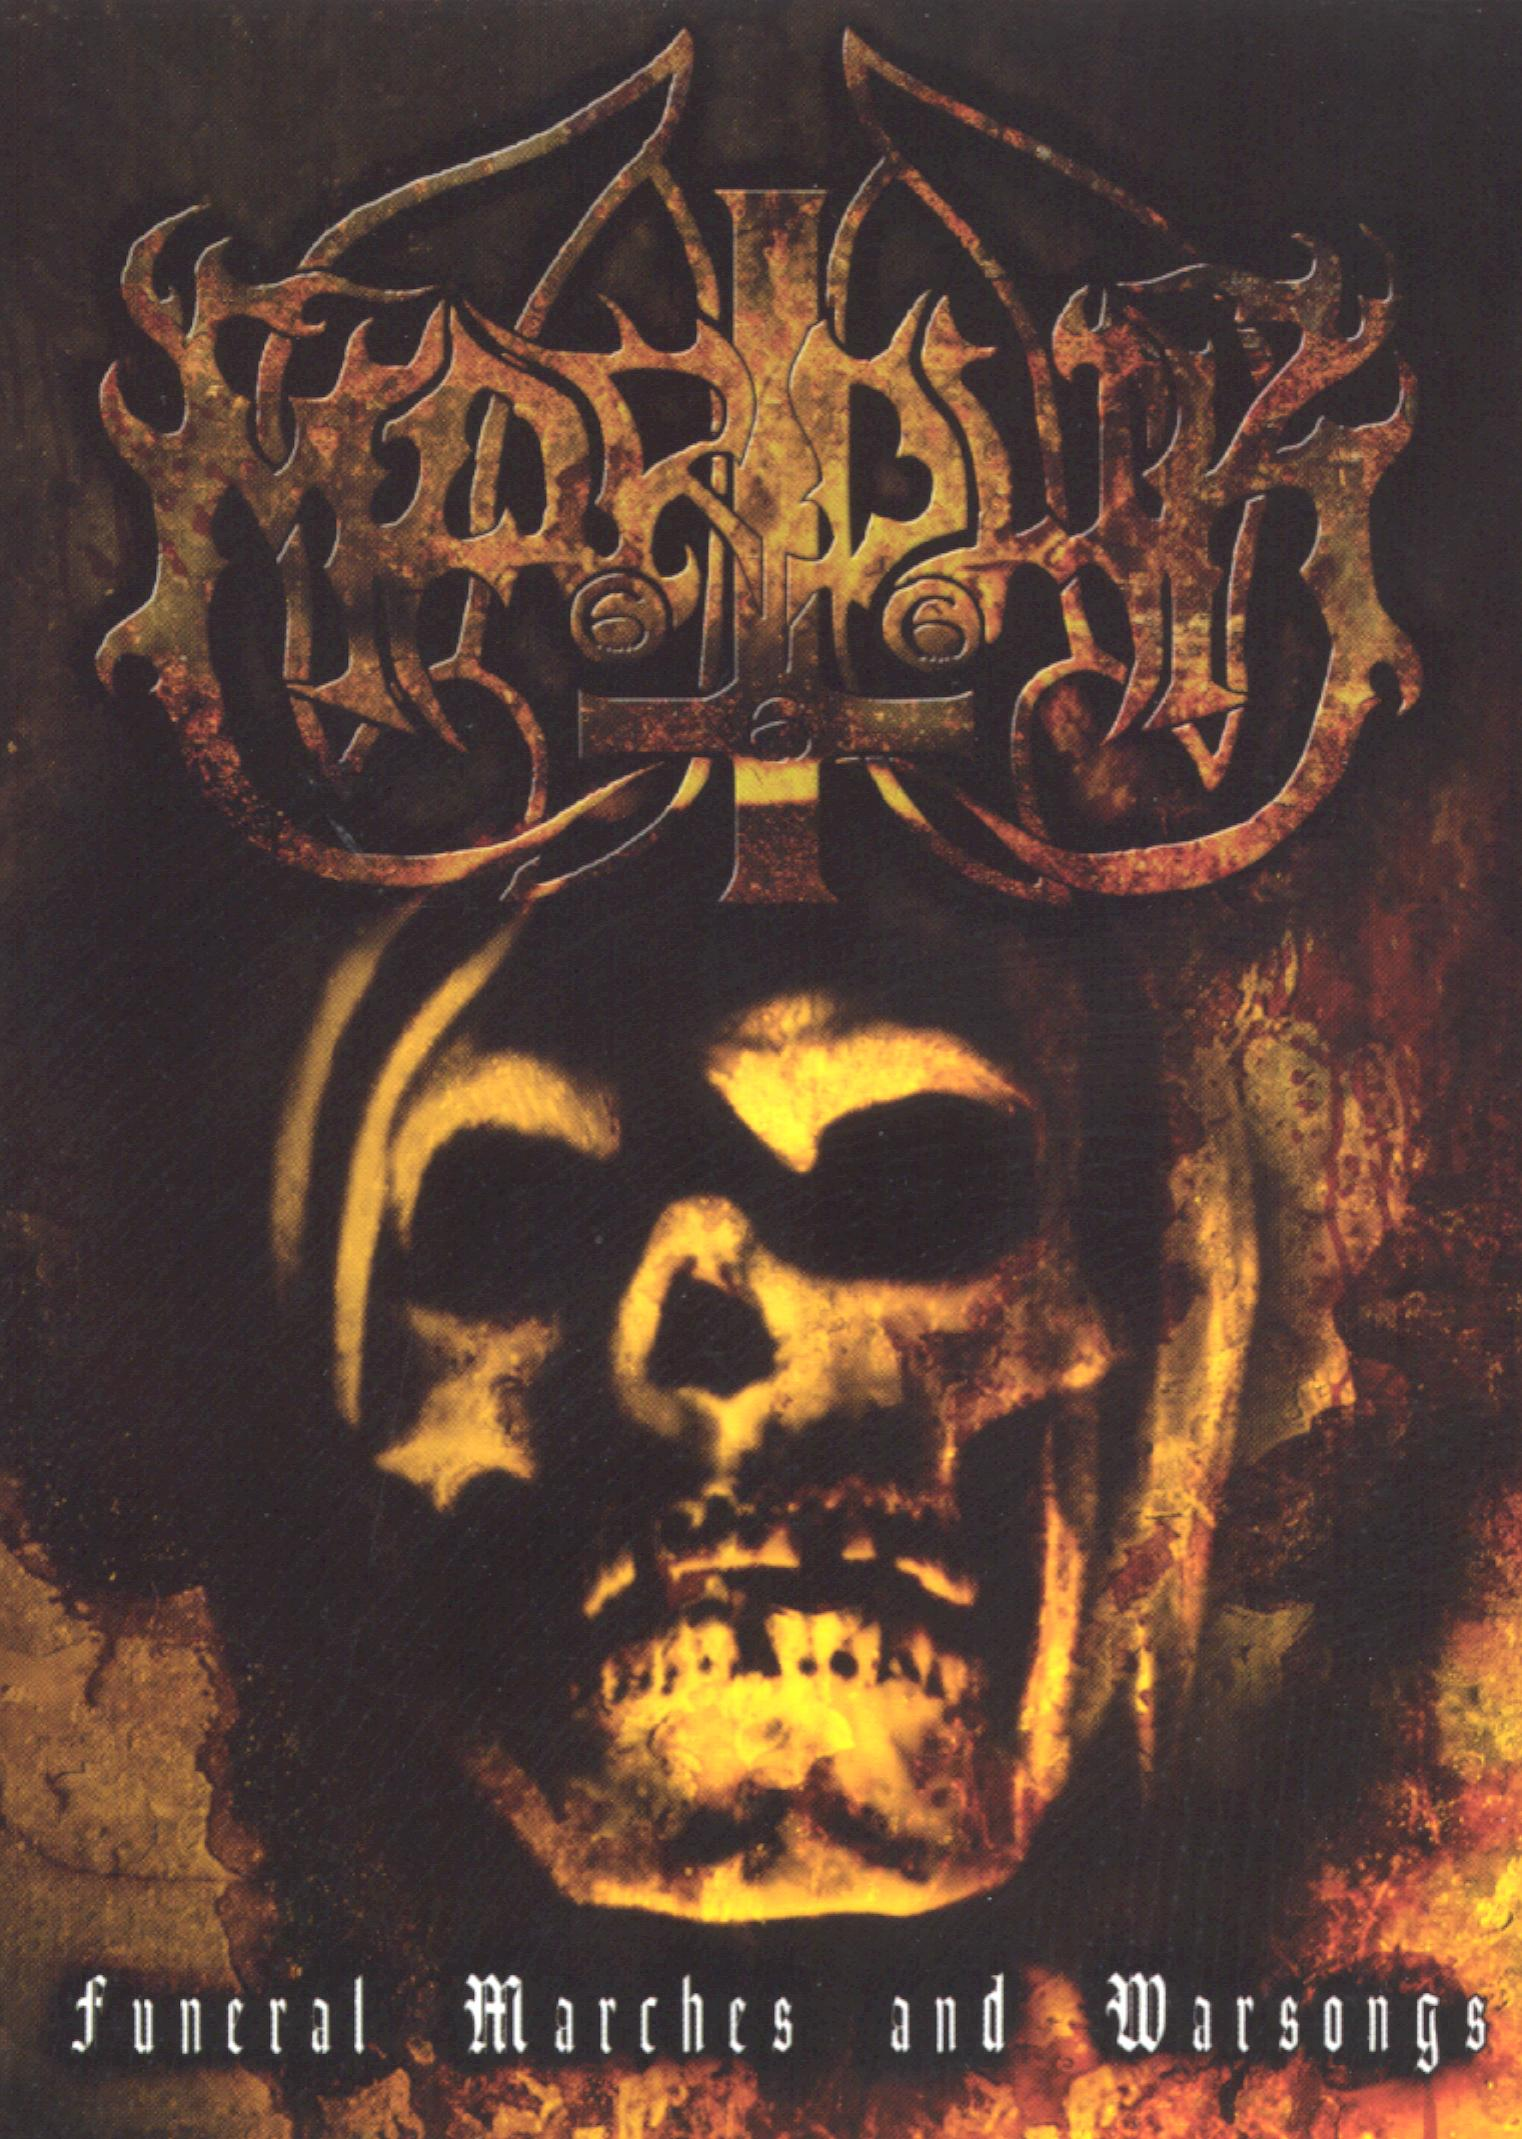 Marduk: Funeral Marches and Warsongs